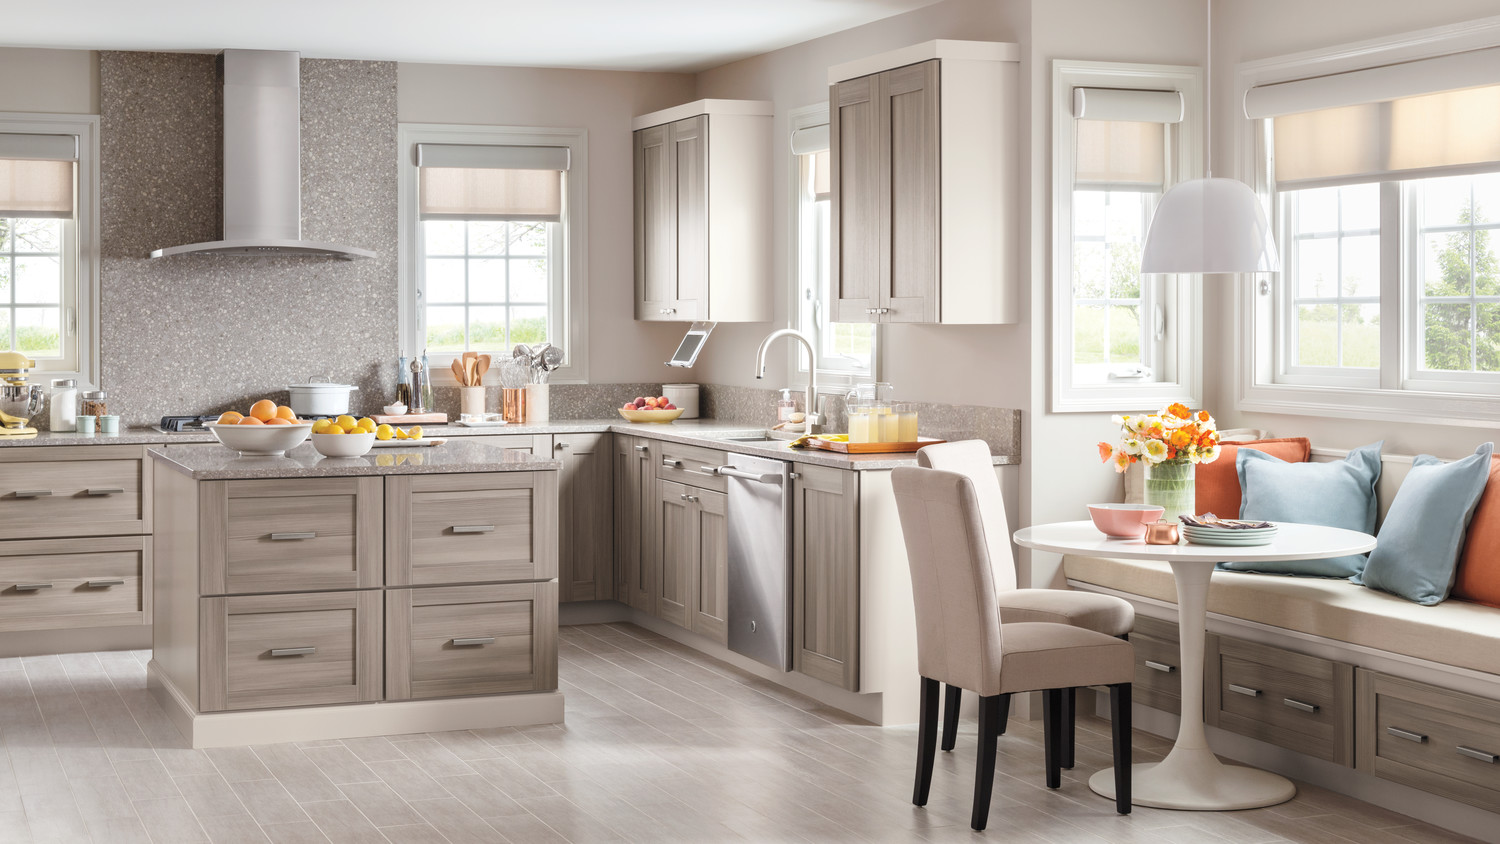 Awesome Video: Ask Martha: What Are Textured PureStyle Cabinets? | Martha Stewart